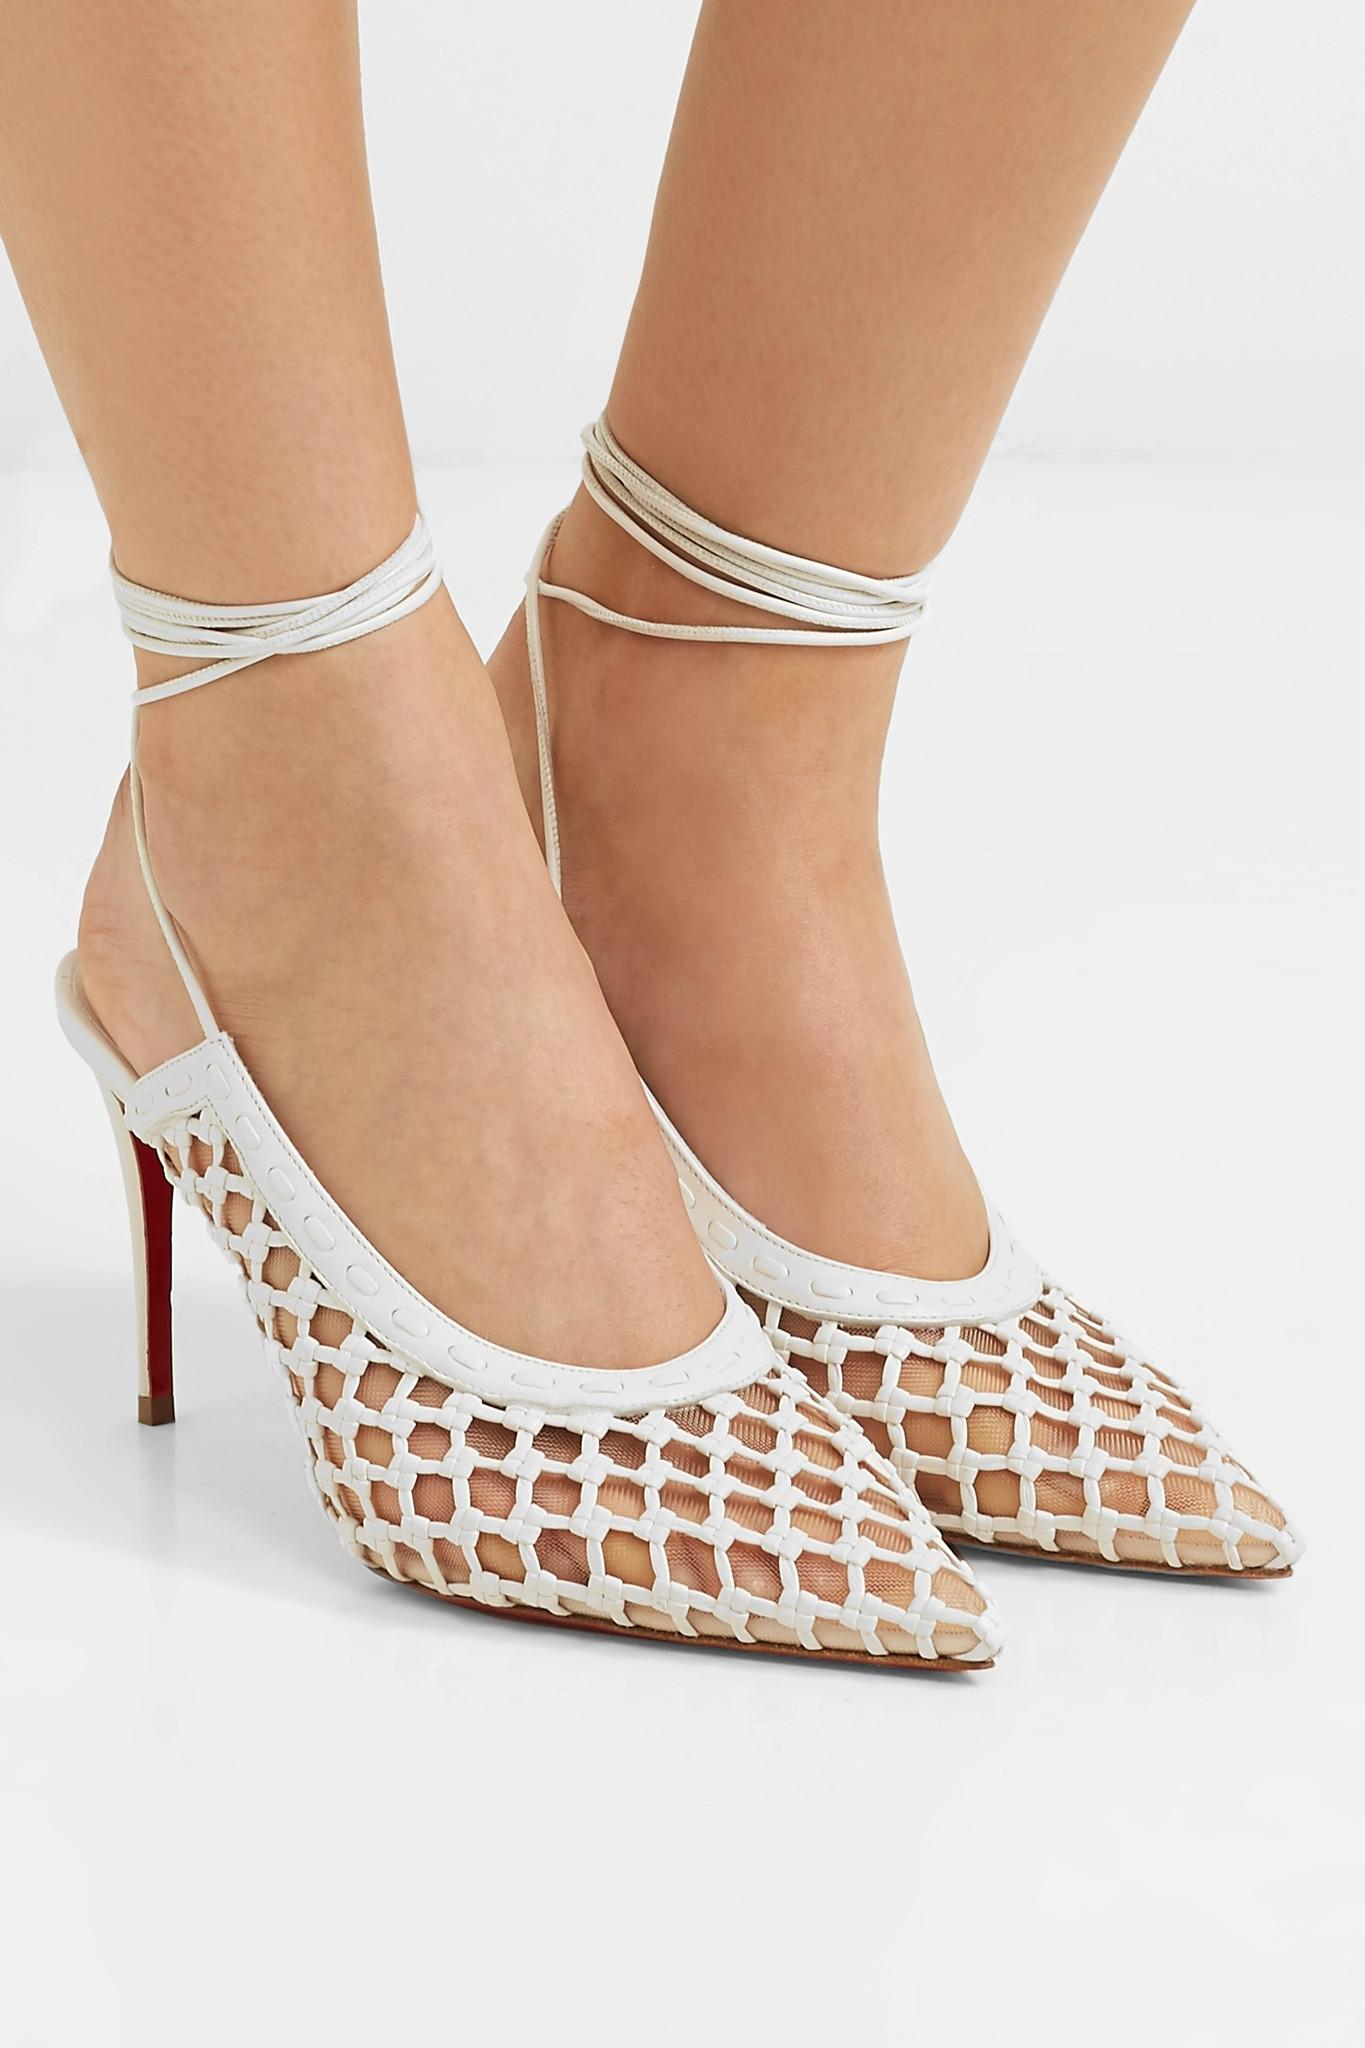 0ab9ecbd9df0 Christian Louboutin - White Roland Mouret Cage And Curry 85 Mesh And Woven  Leather Pumps -. View fullscreen